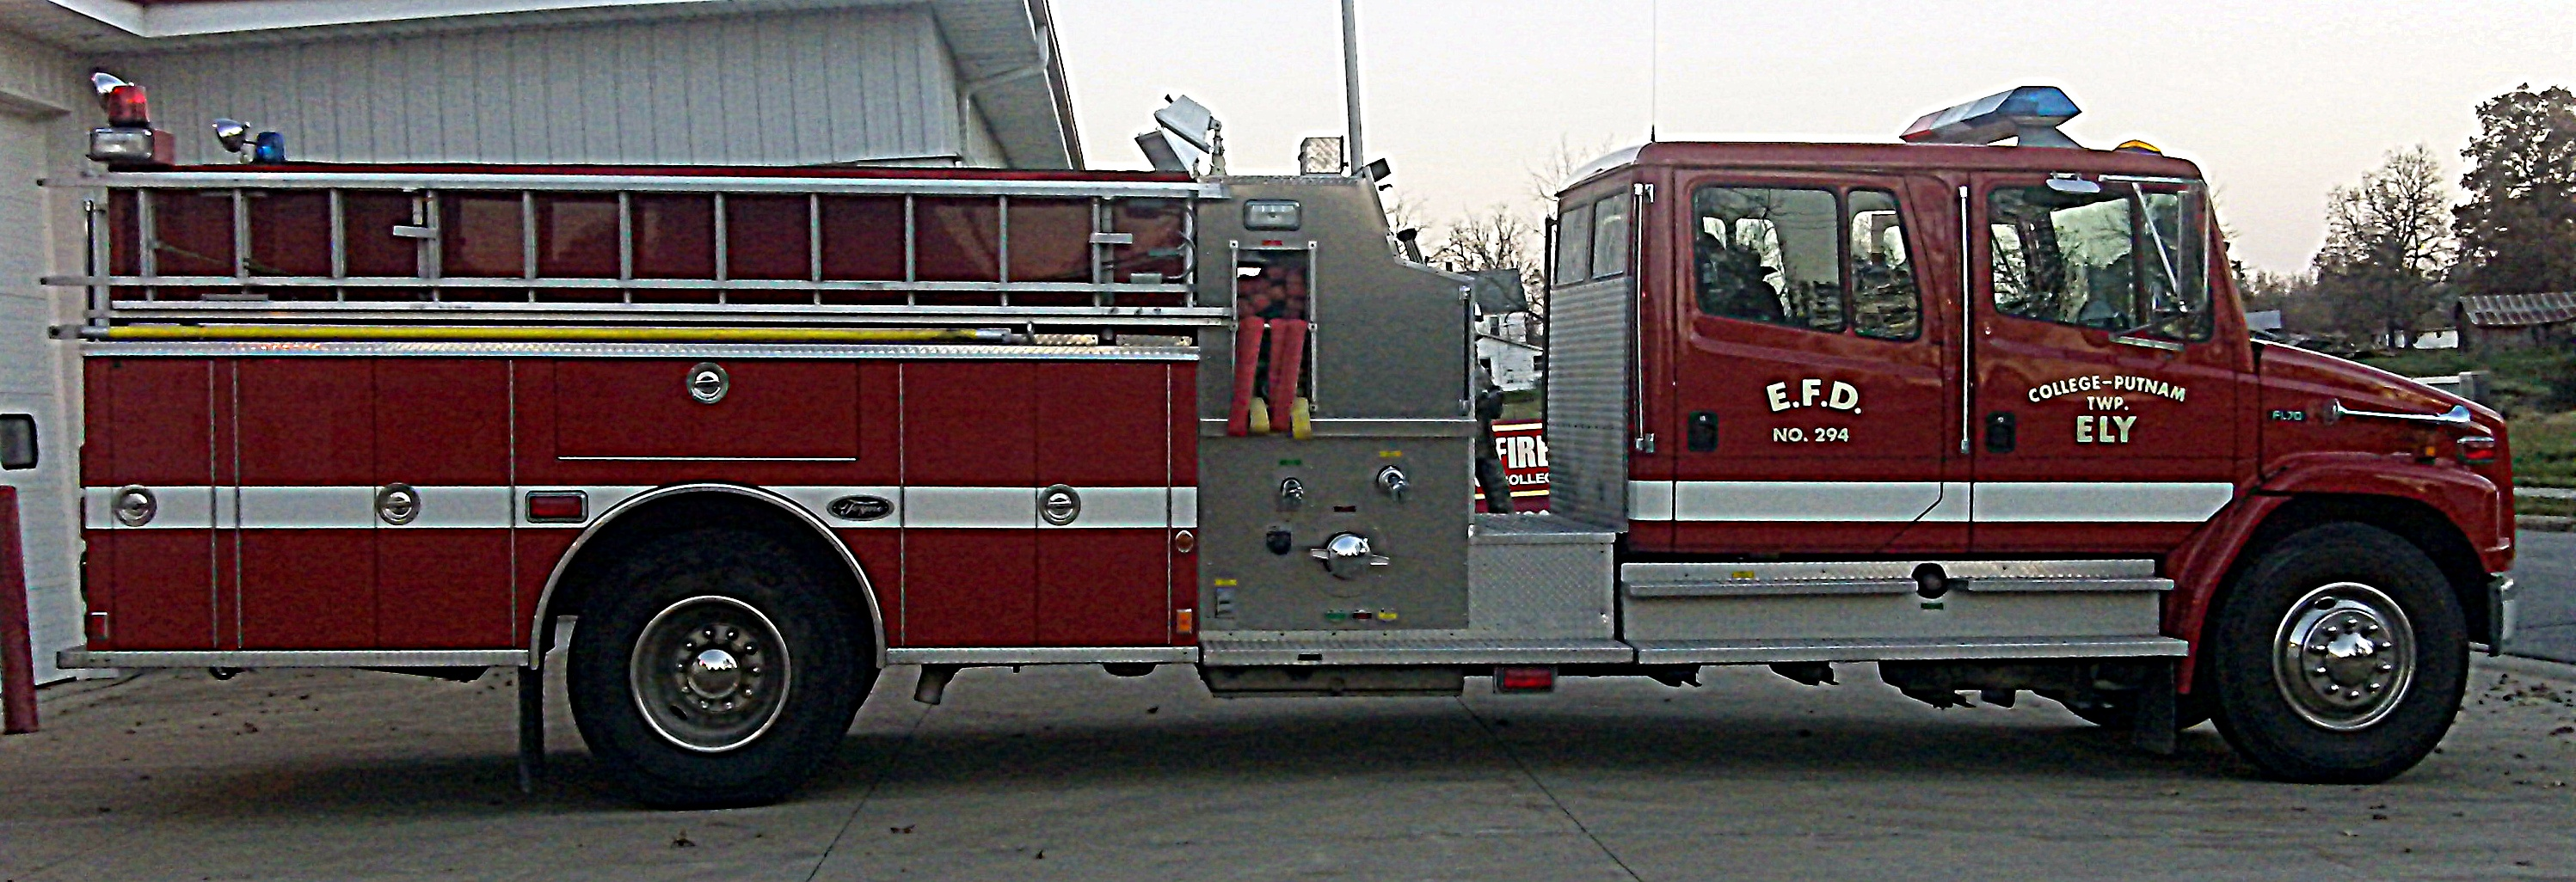 Apparatus Page | Ely Fire Department